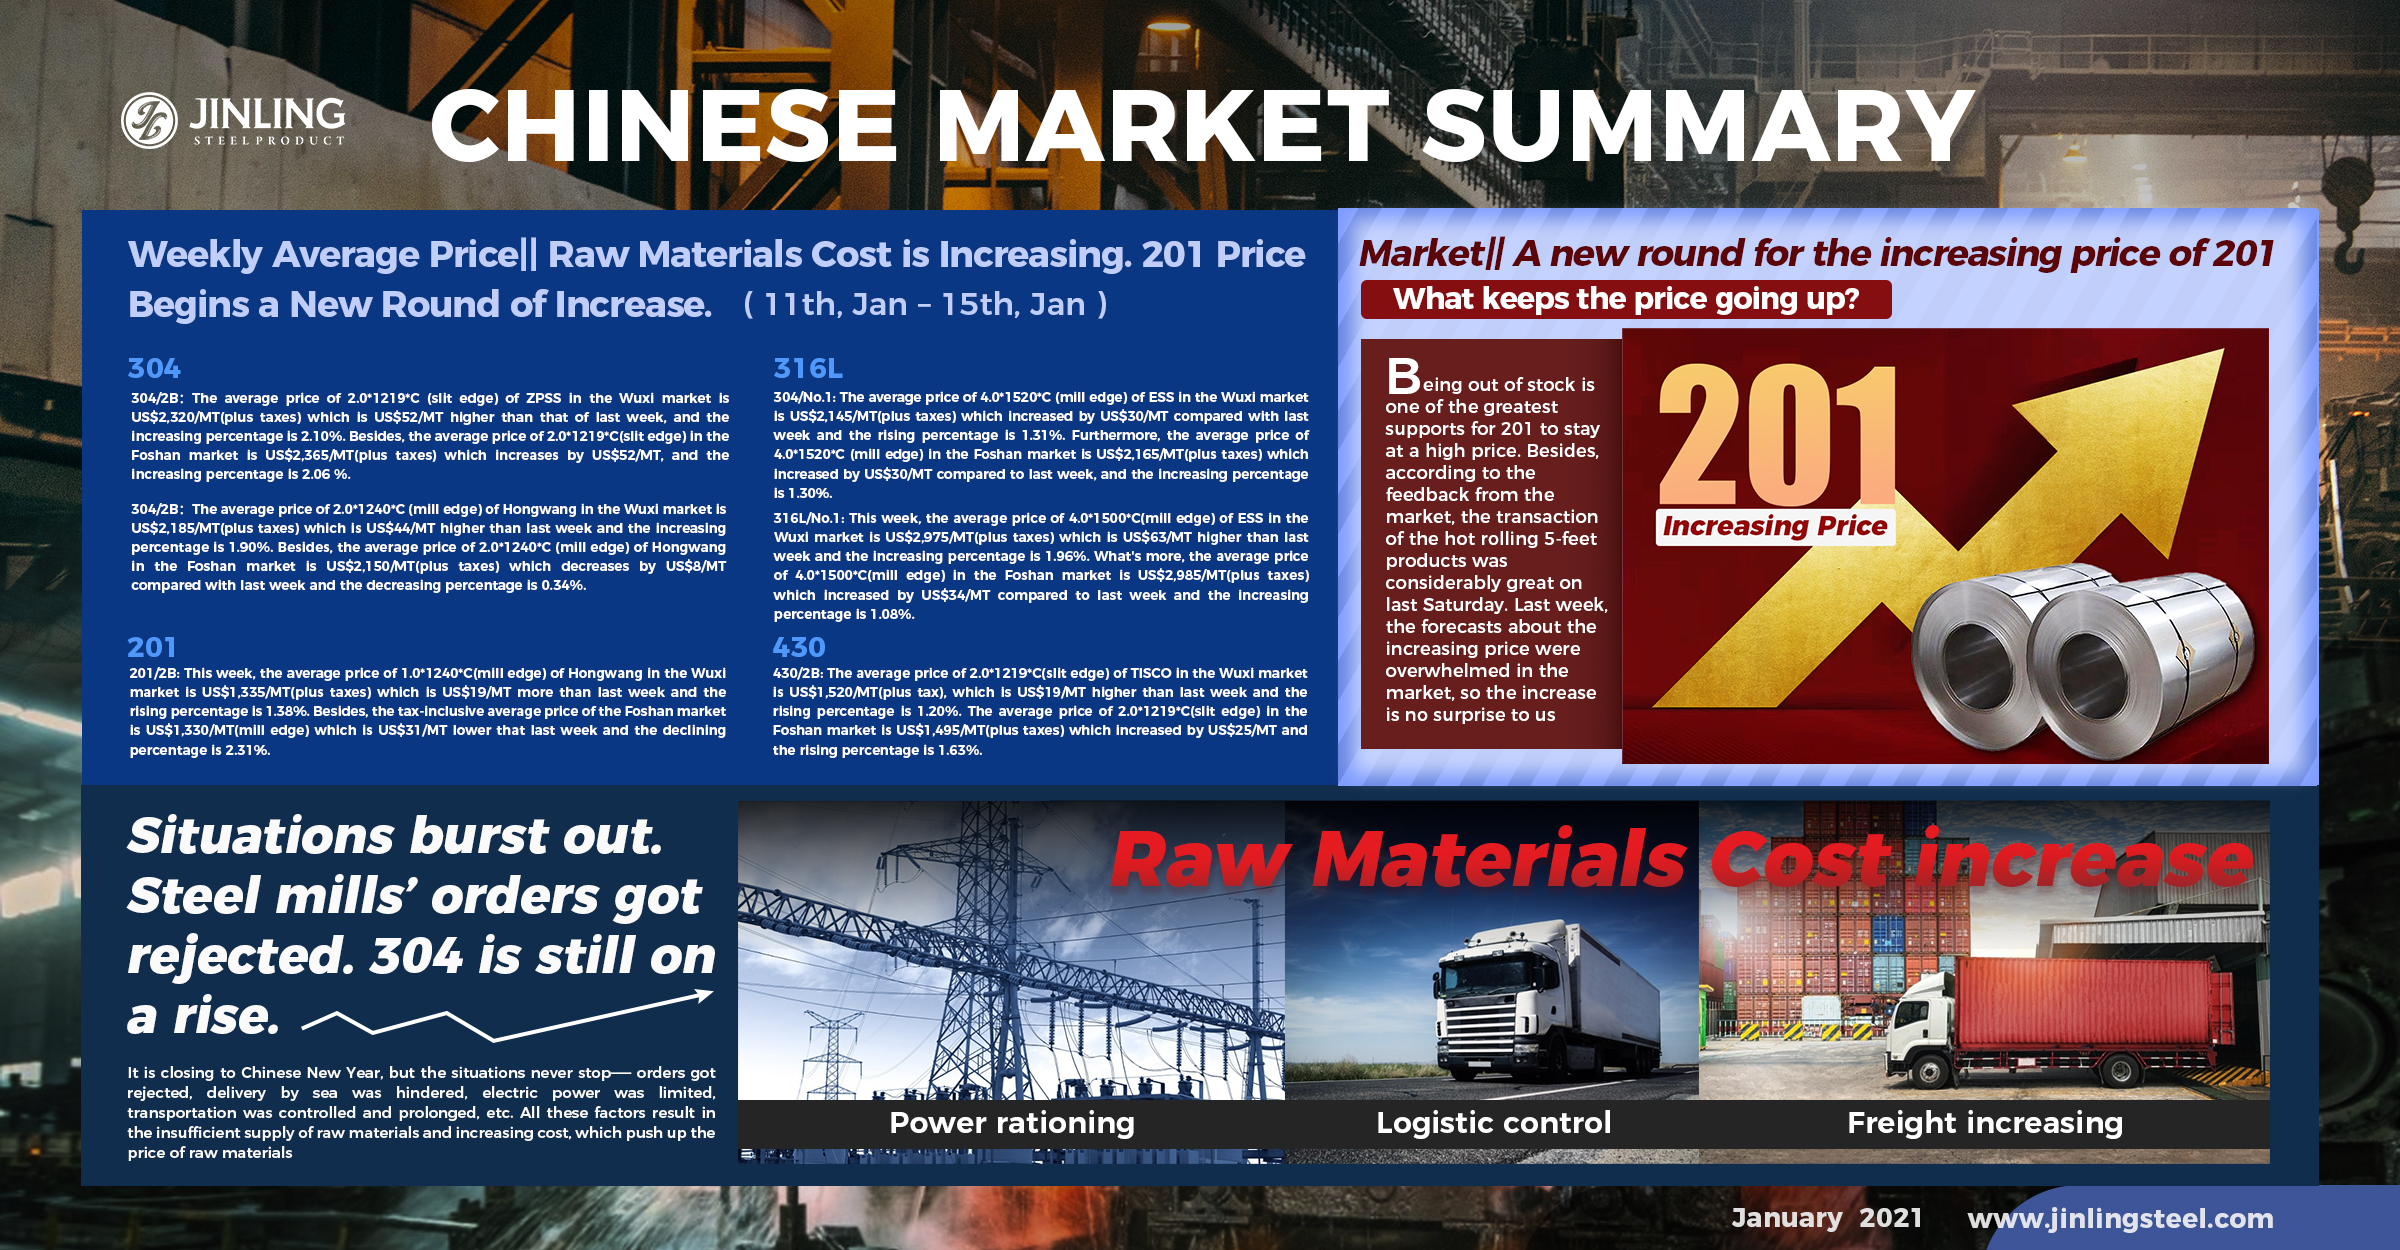 Weekly Average Price|| Raw Materials Cost is Increasing. 201 Price Begins a New Round of Increase. Stainless Steel Market Summary in China(11th, Jan – 15th, Jan)